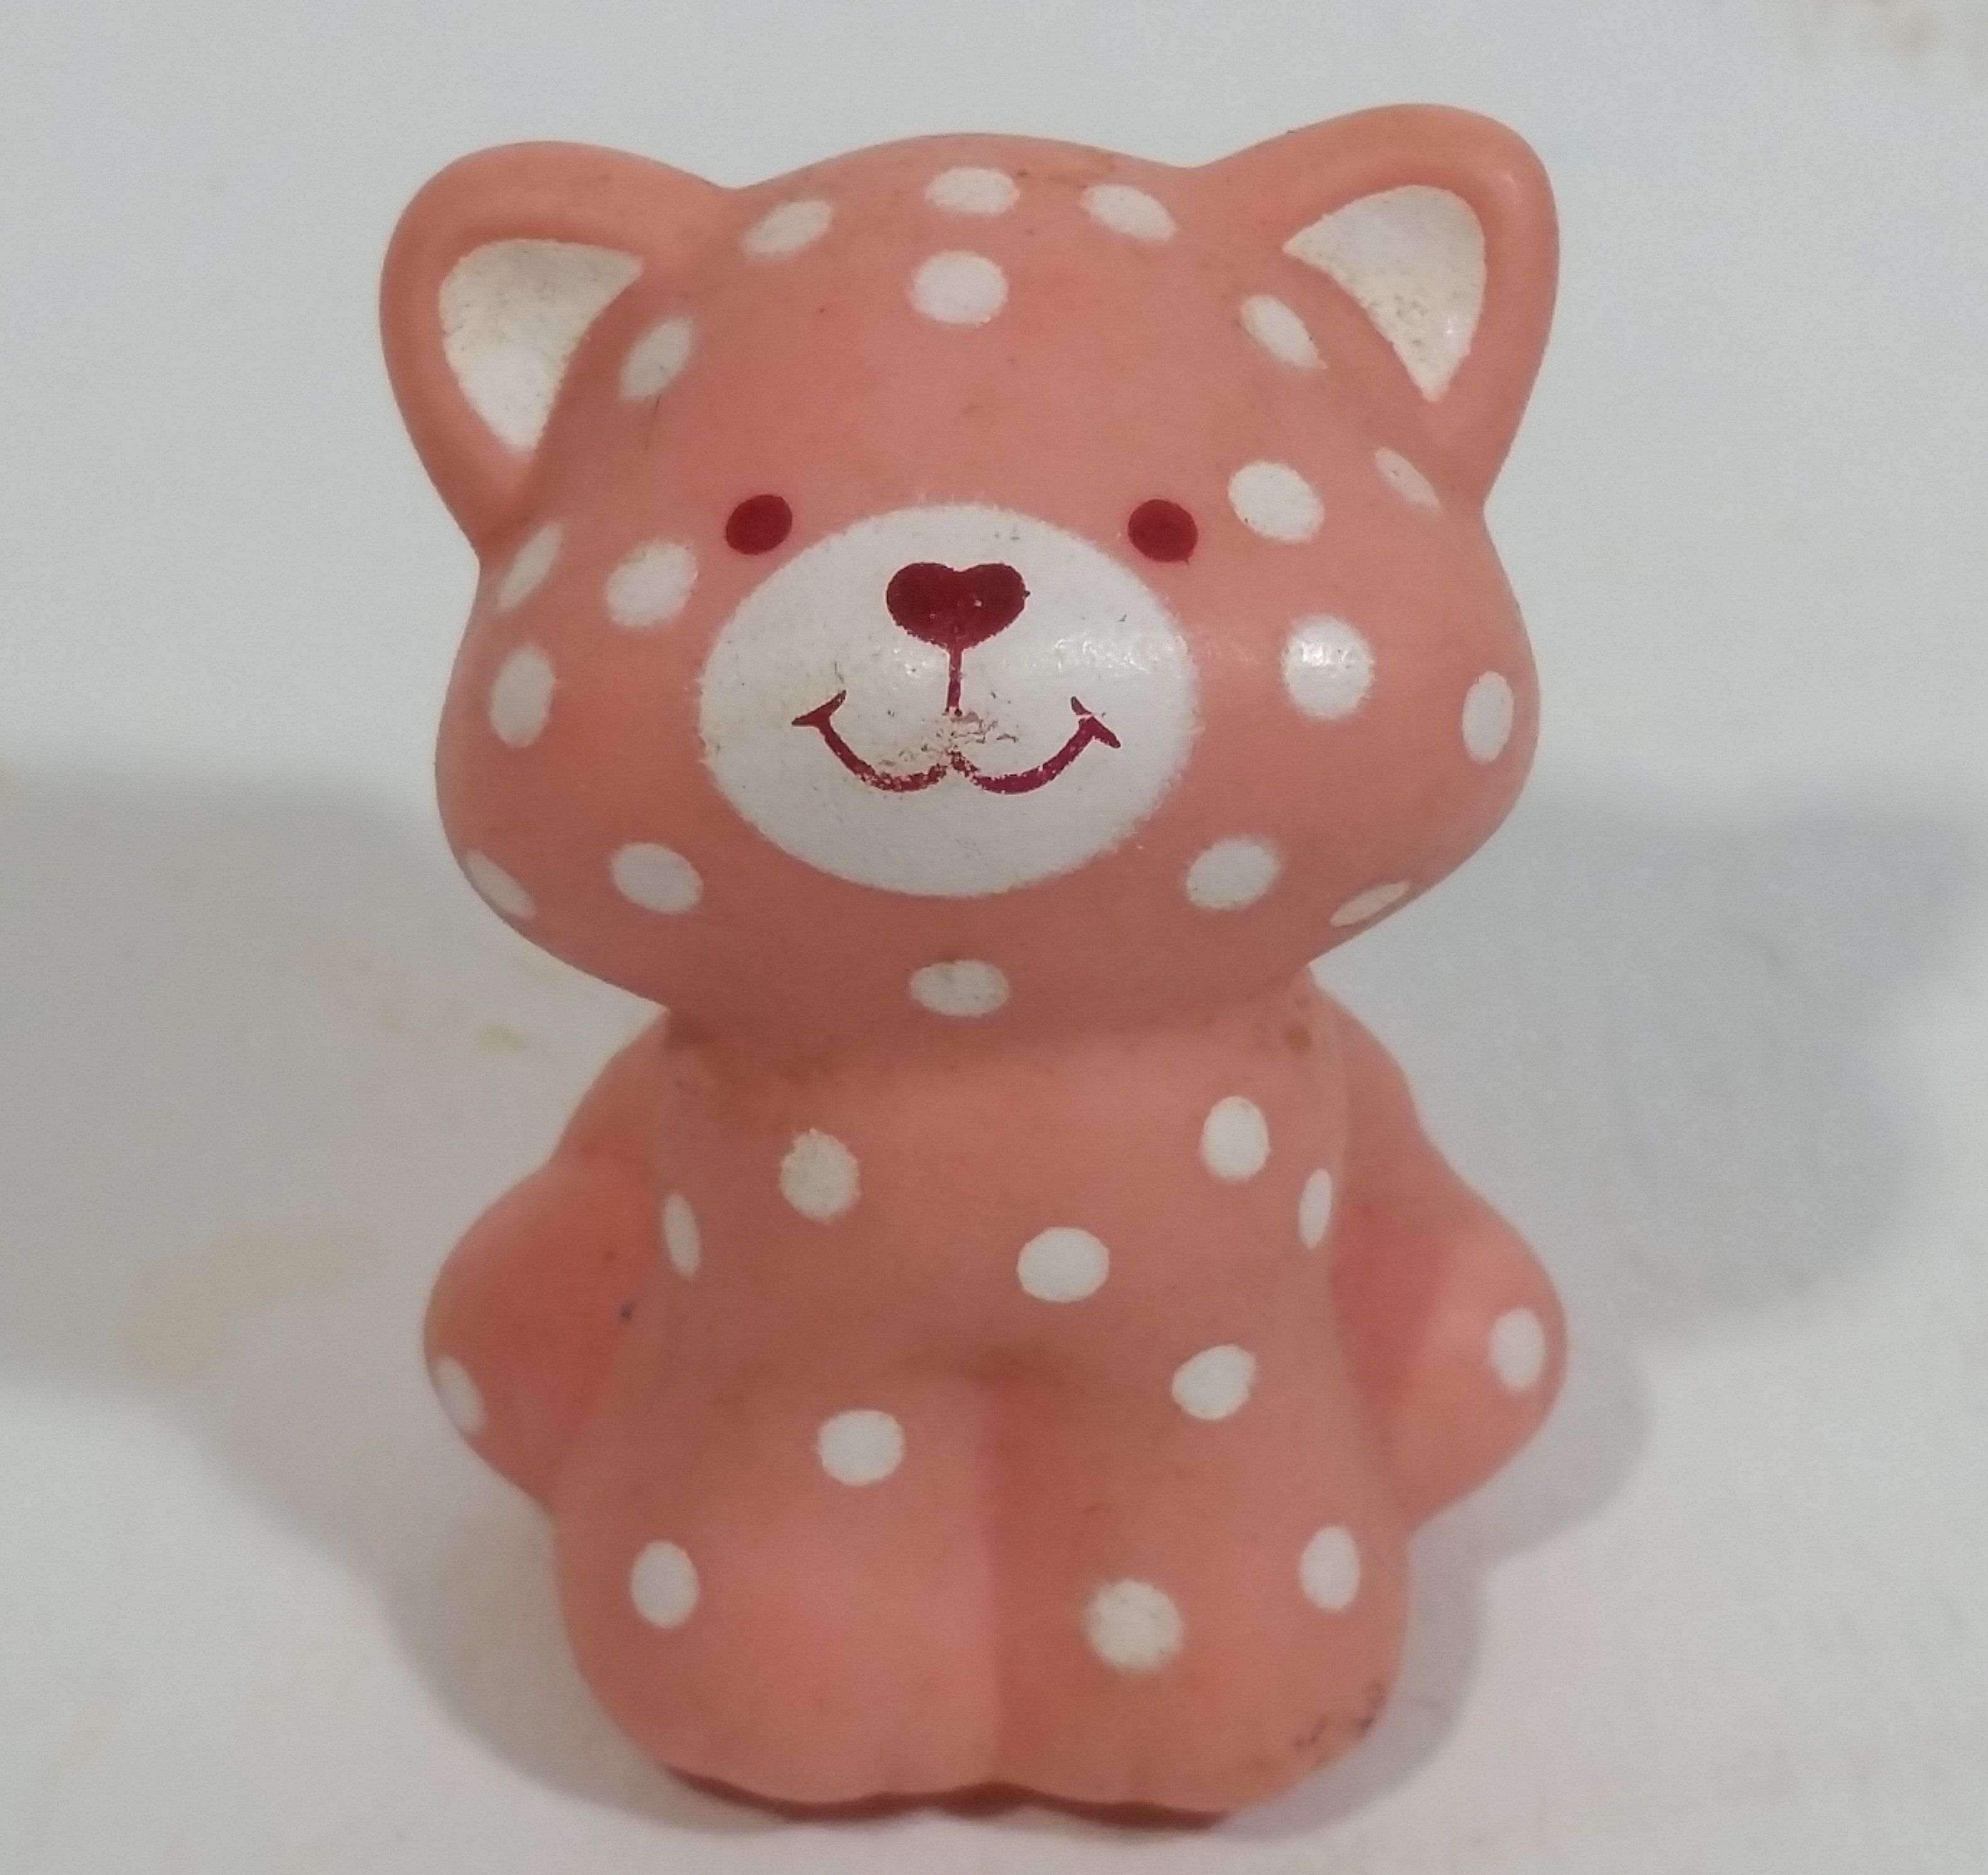 Vintage 1982 A G C Strawberry Shortcake White Spotted Pink Kitty Cat Hard Rubber Toy Figure Strawberry Shortcake Cartoon Kitty Strawberry Shortcake